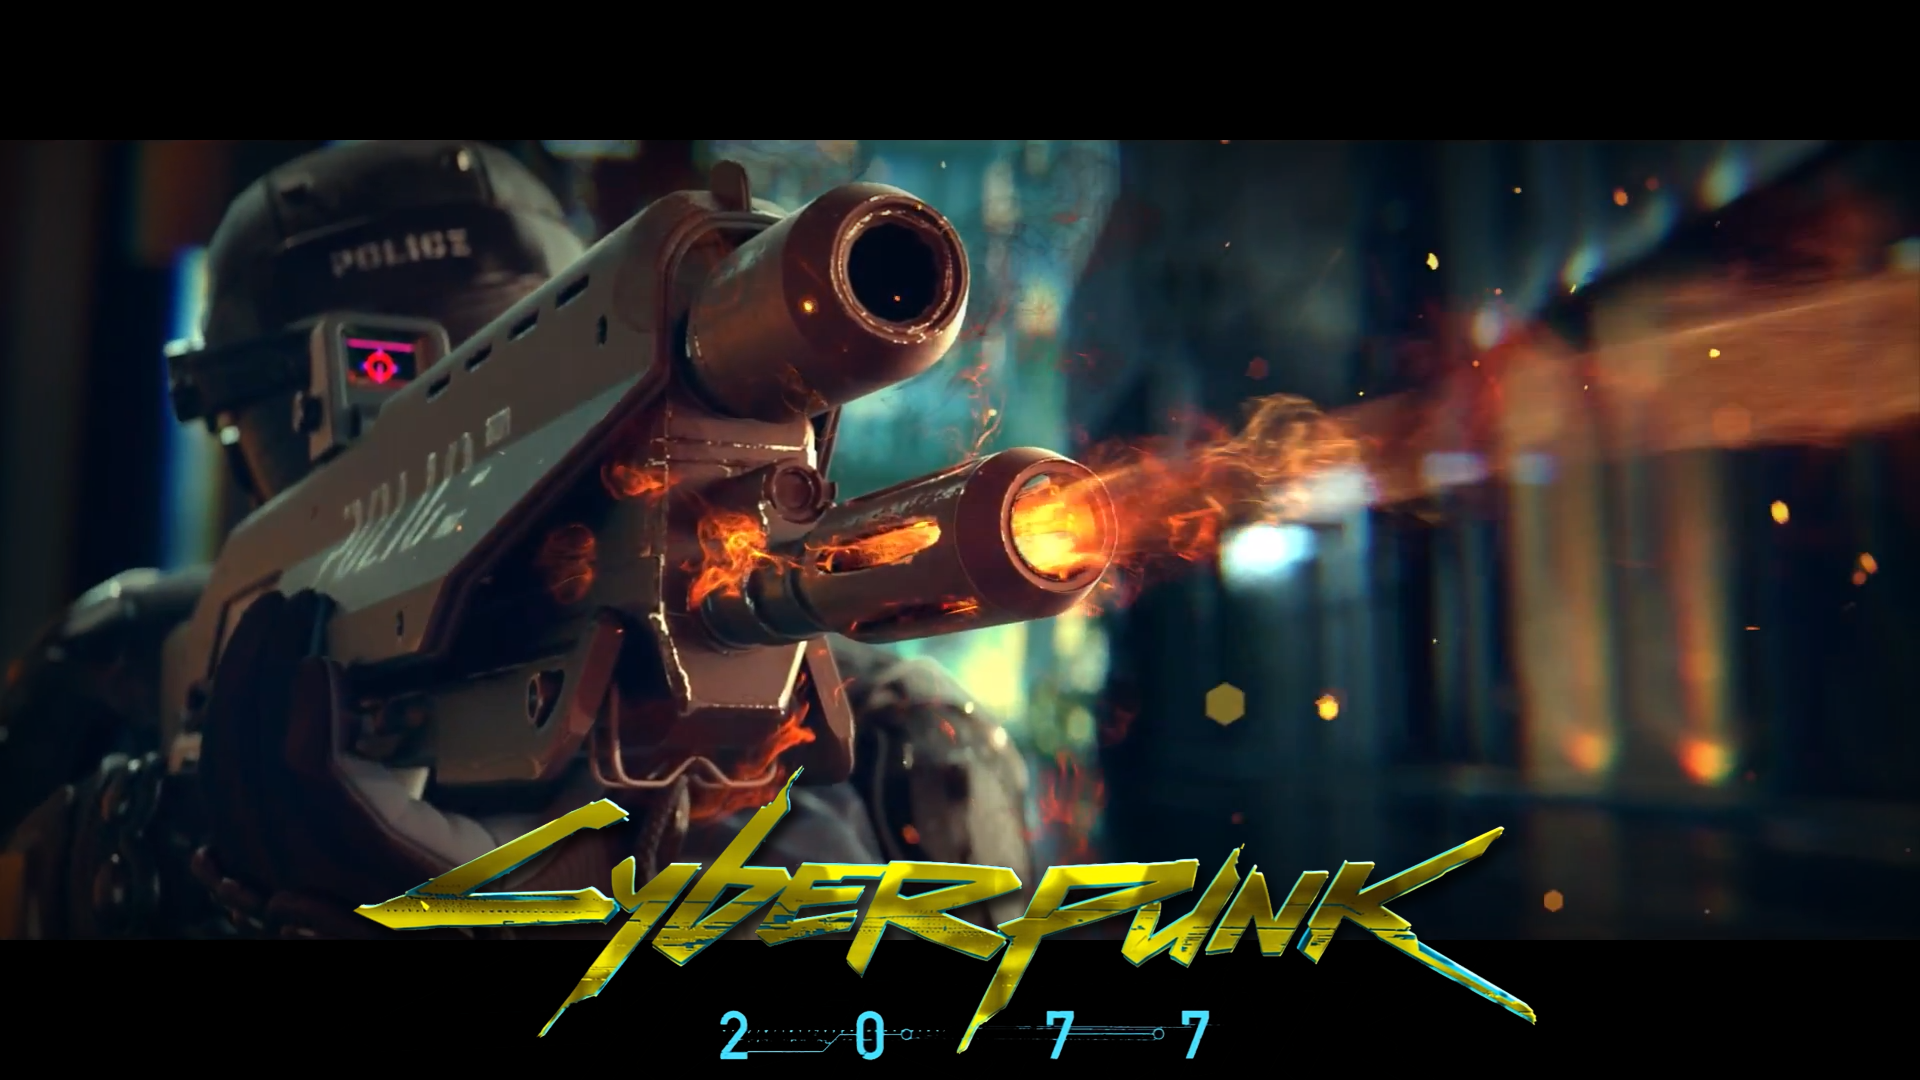 Cyberpunk 2077 – Is All Ready To Restrict Usage Of Cybernetics